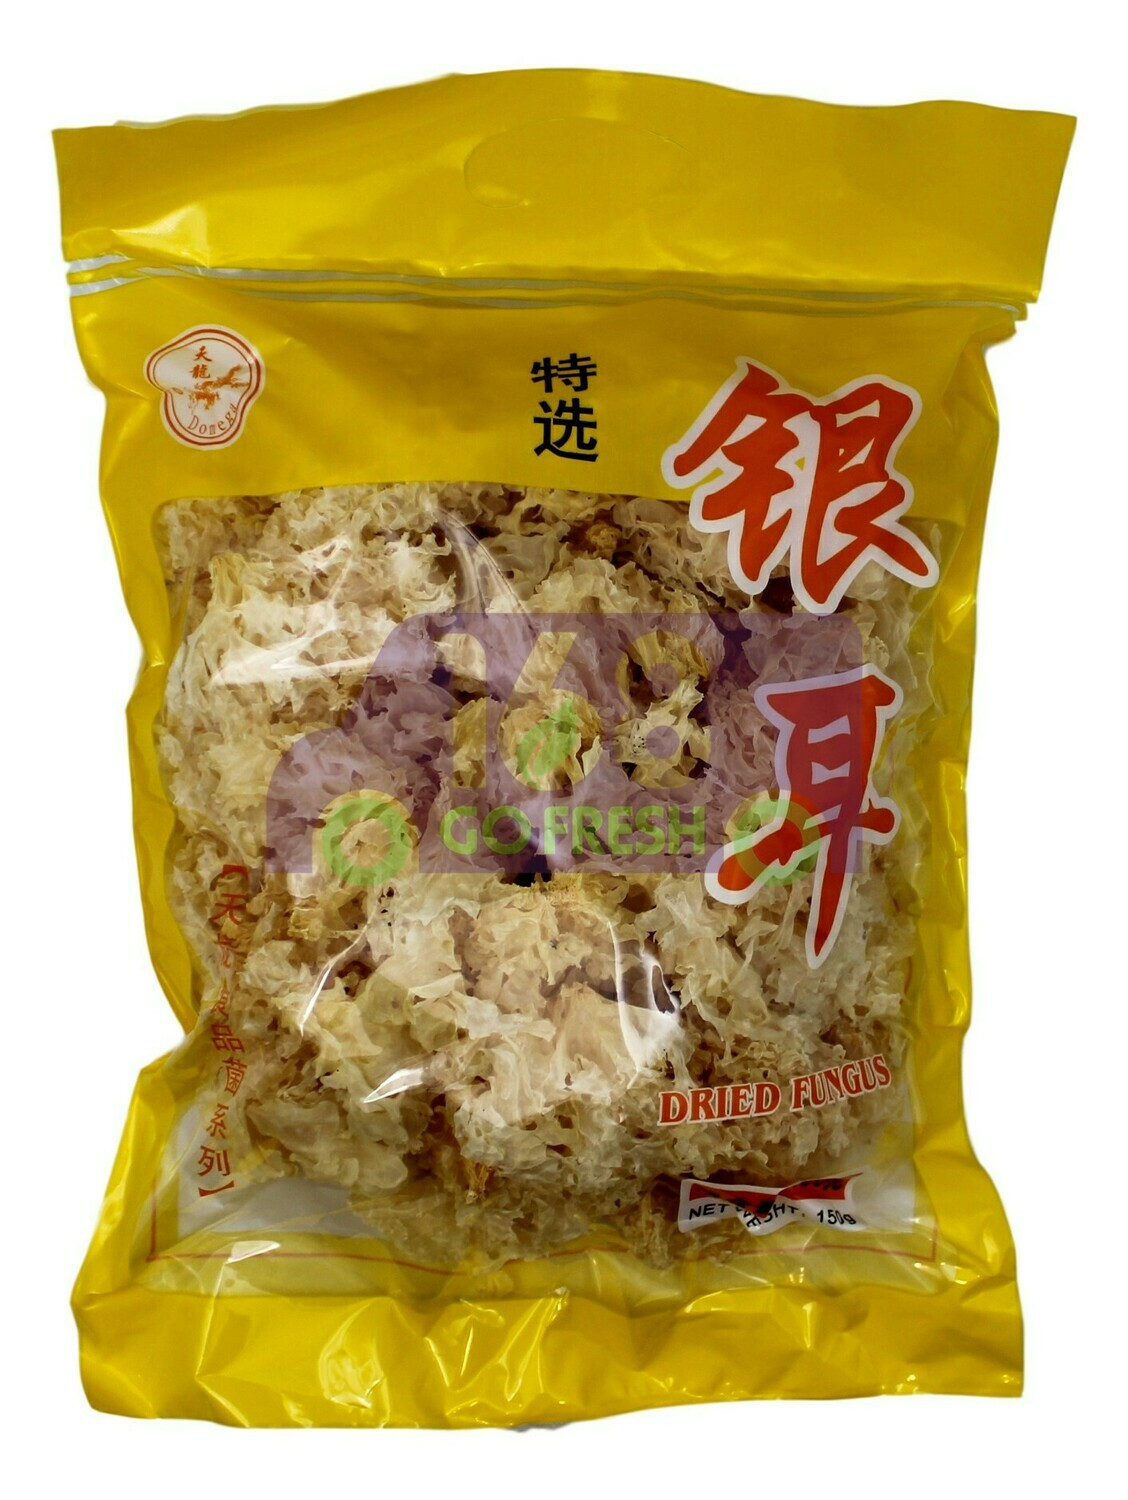 East Dragon Dried Fungus 东龙 特选银耳